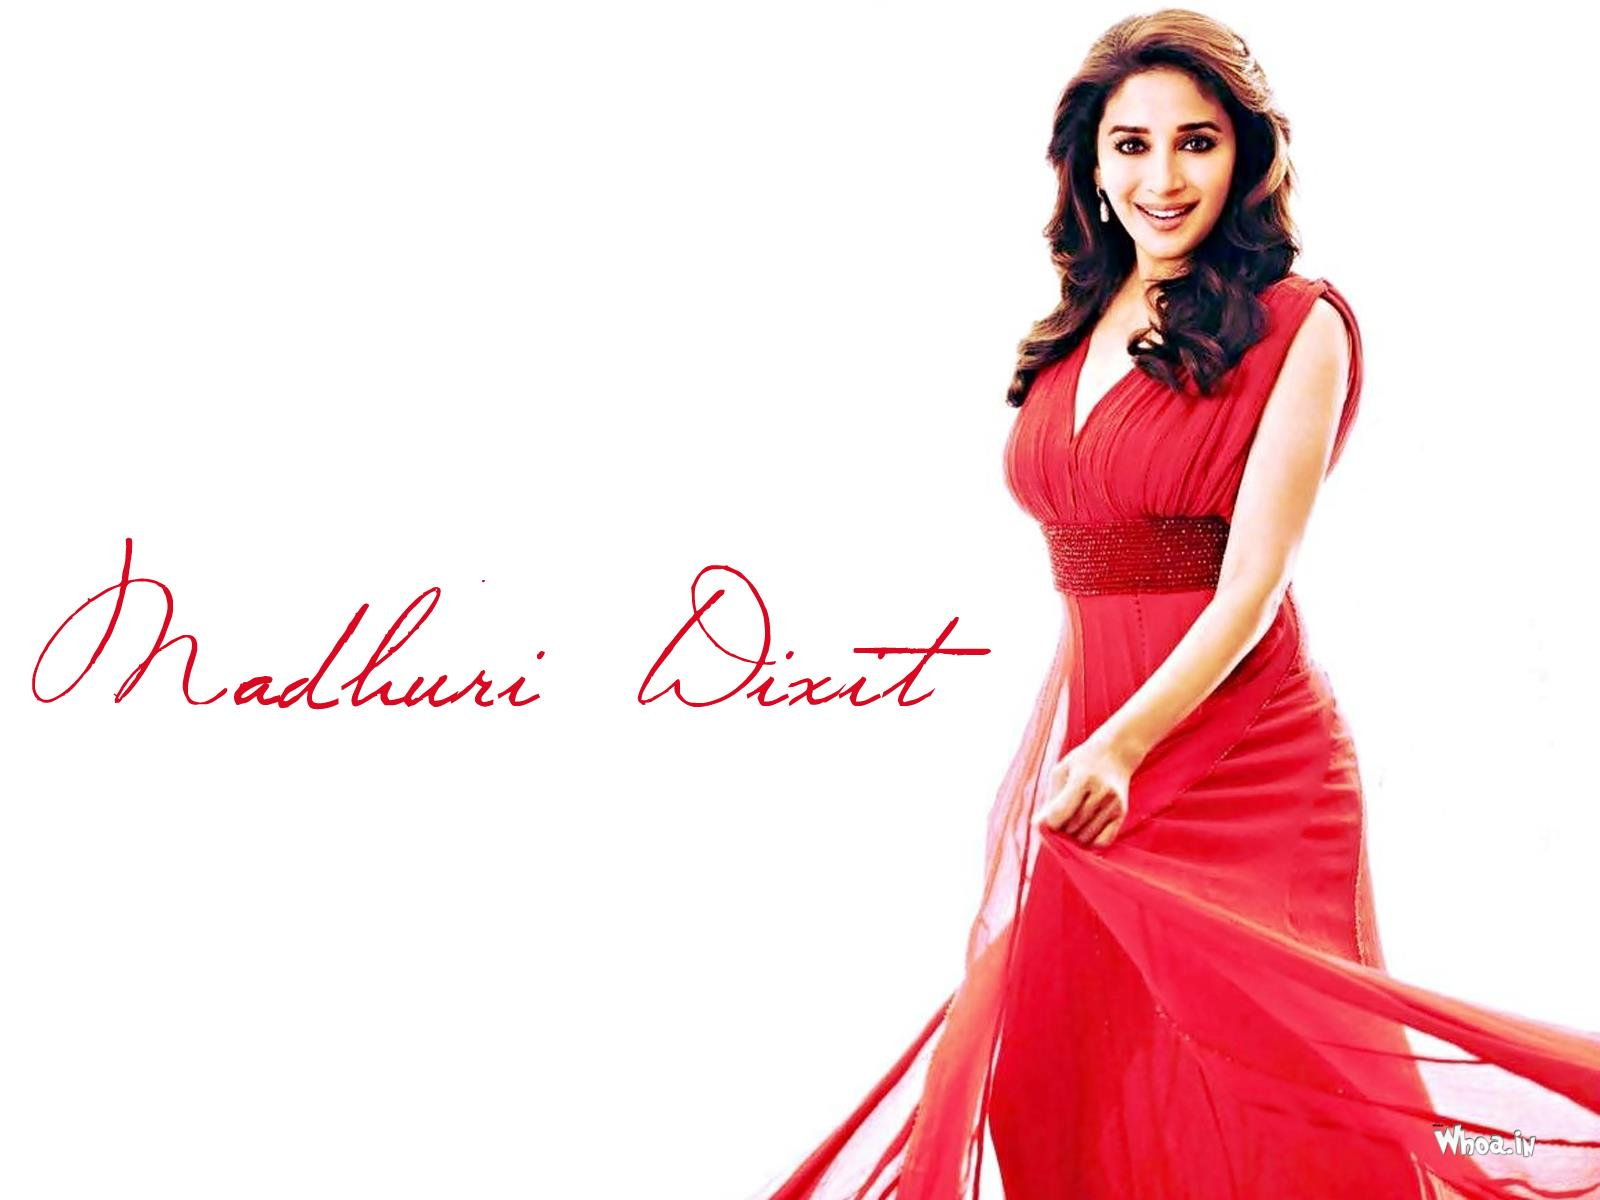 Beautiful Madhuri Dixit Poses In Red Outfit Hd